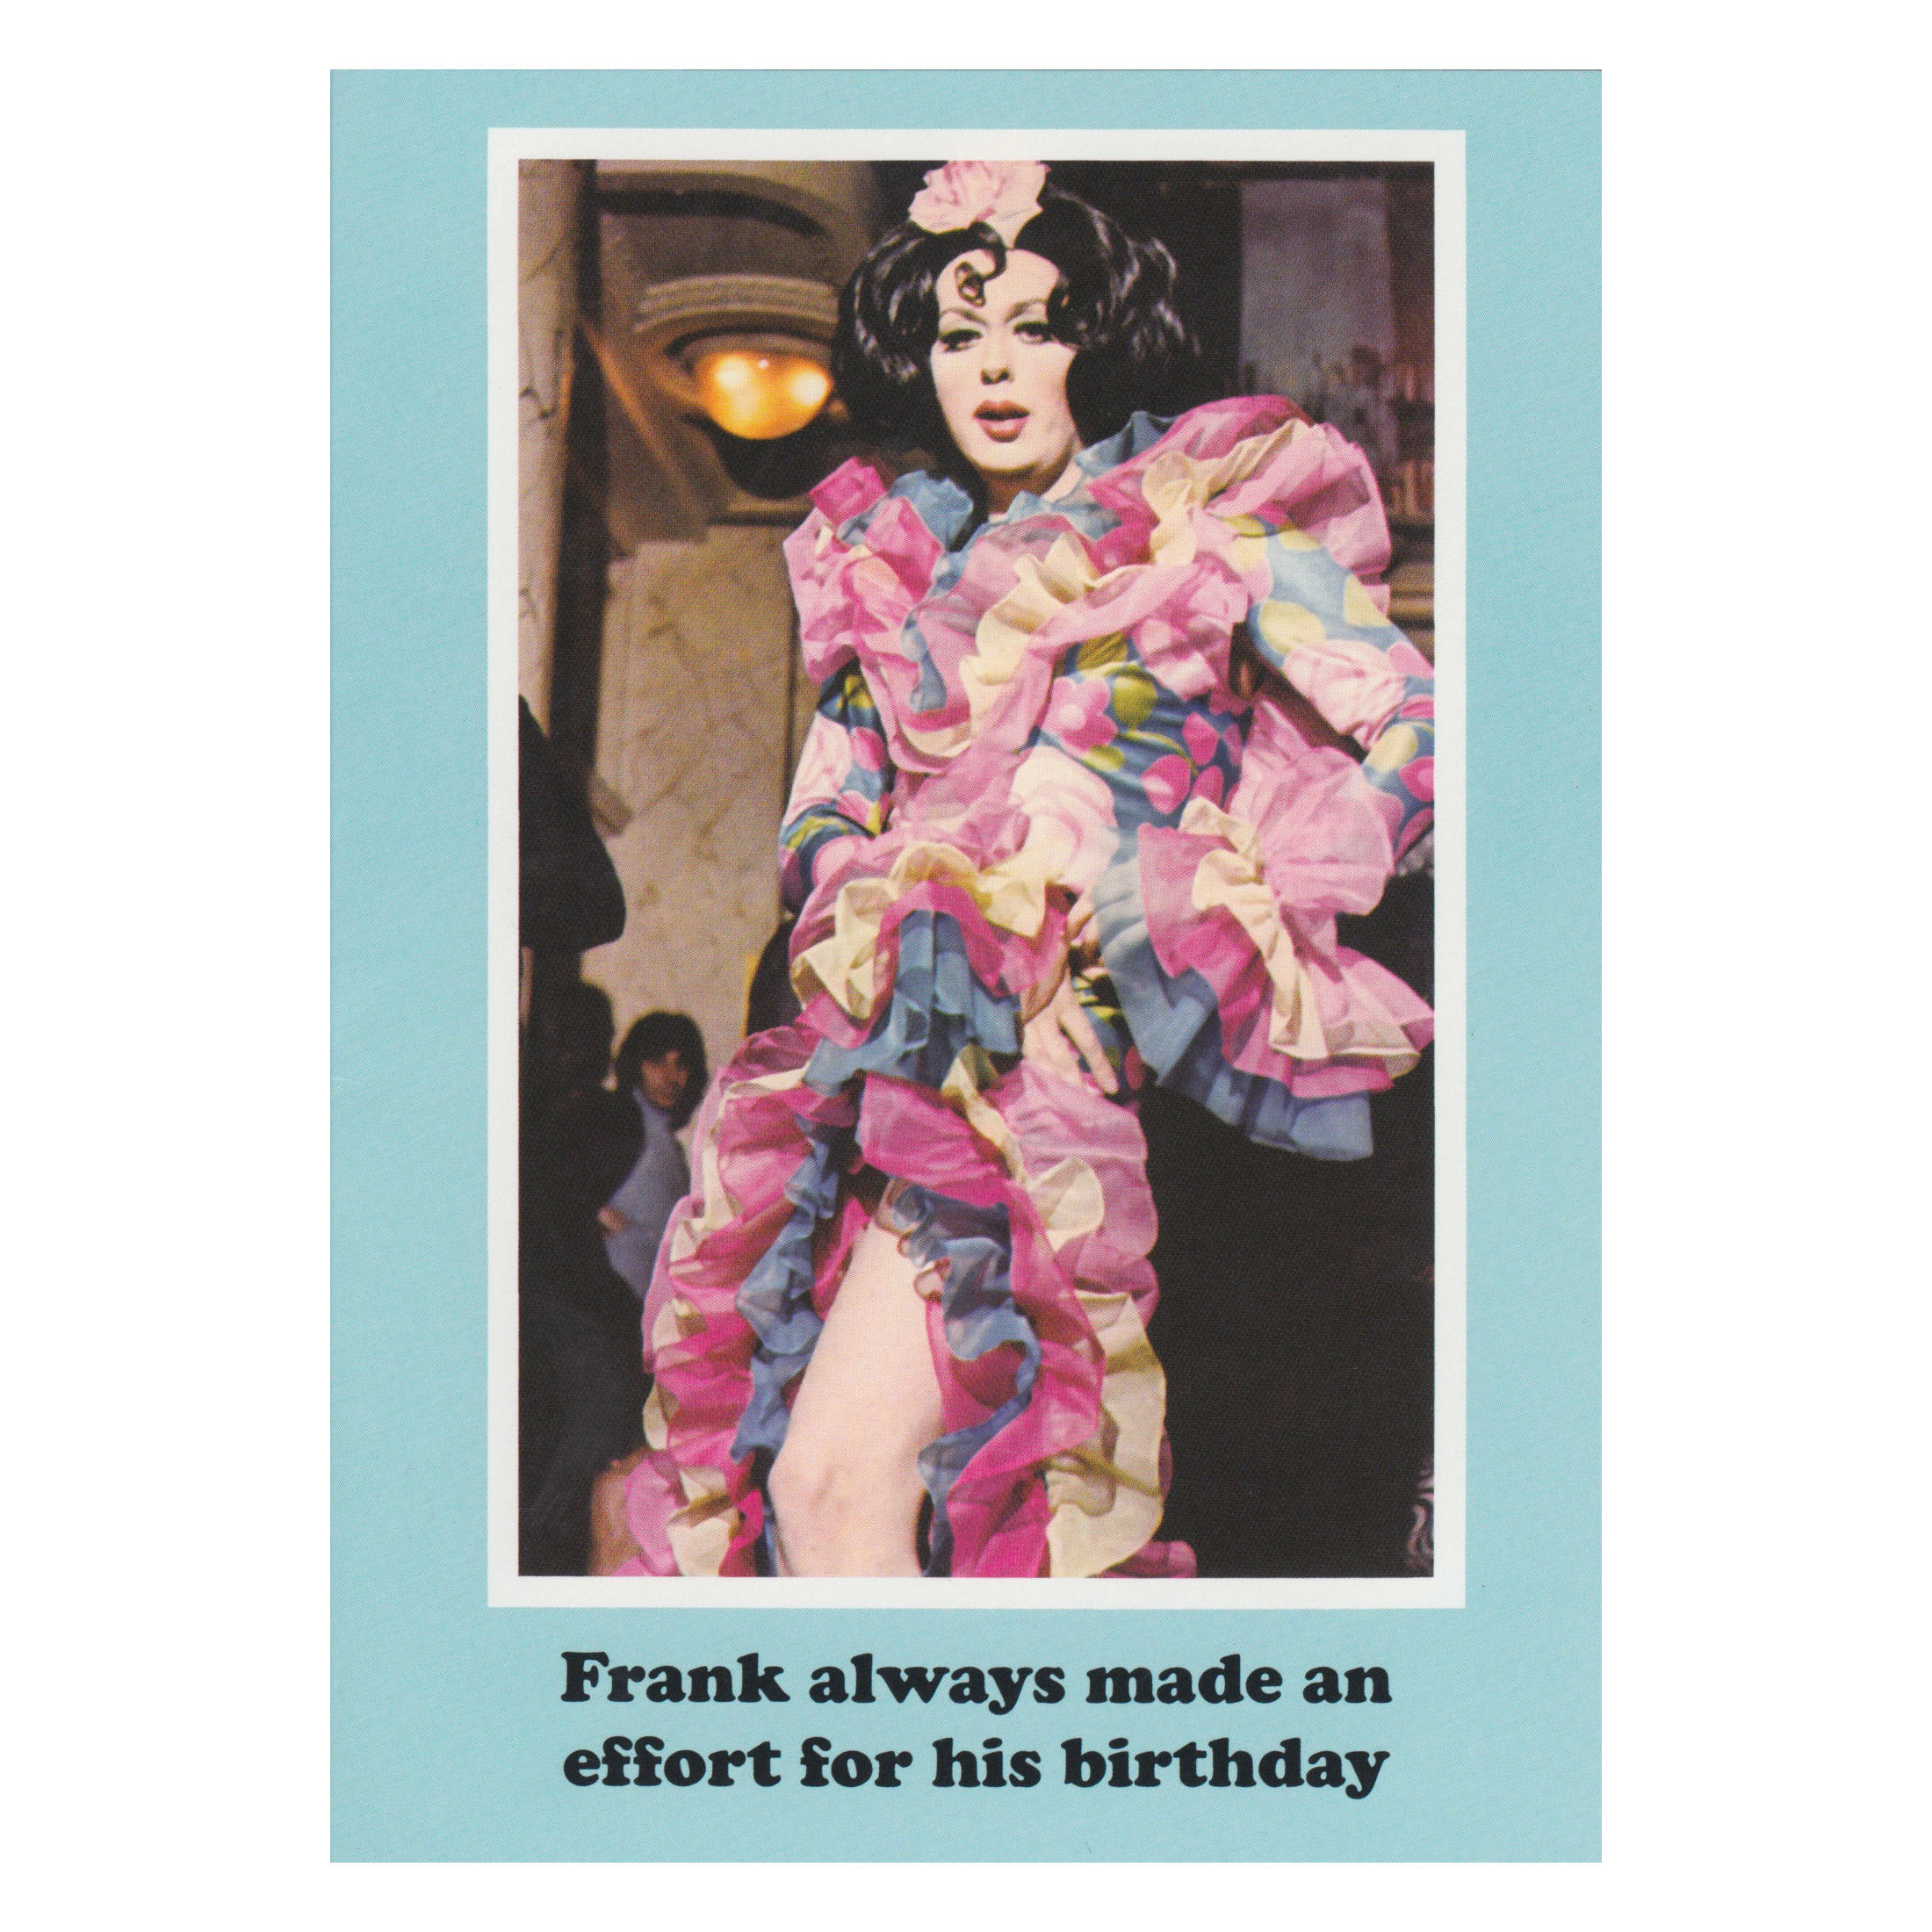 Frank always made an effort for his birthday greetings card frank always made an effort for his birthday greetings card m4hsunfo